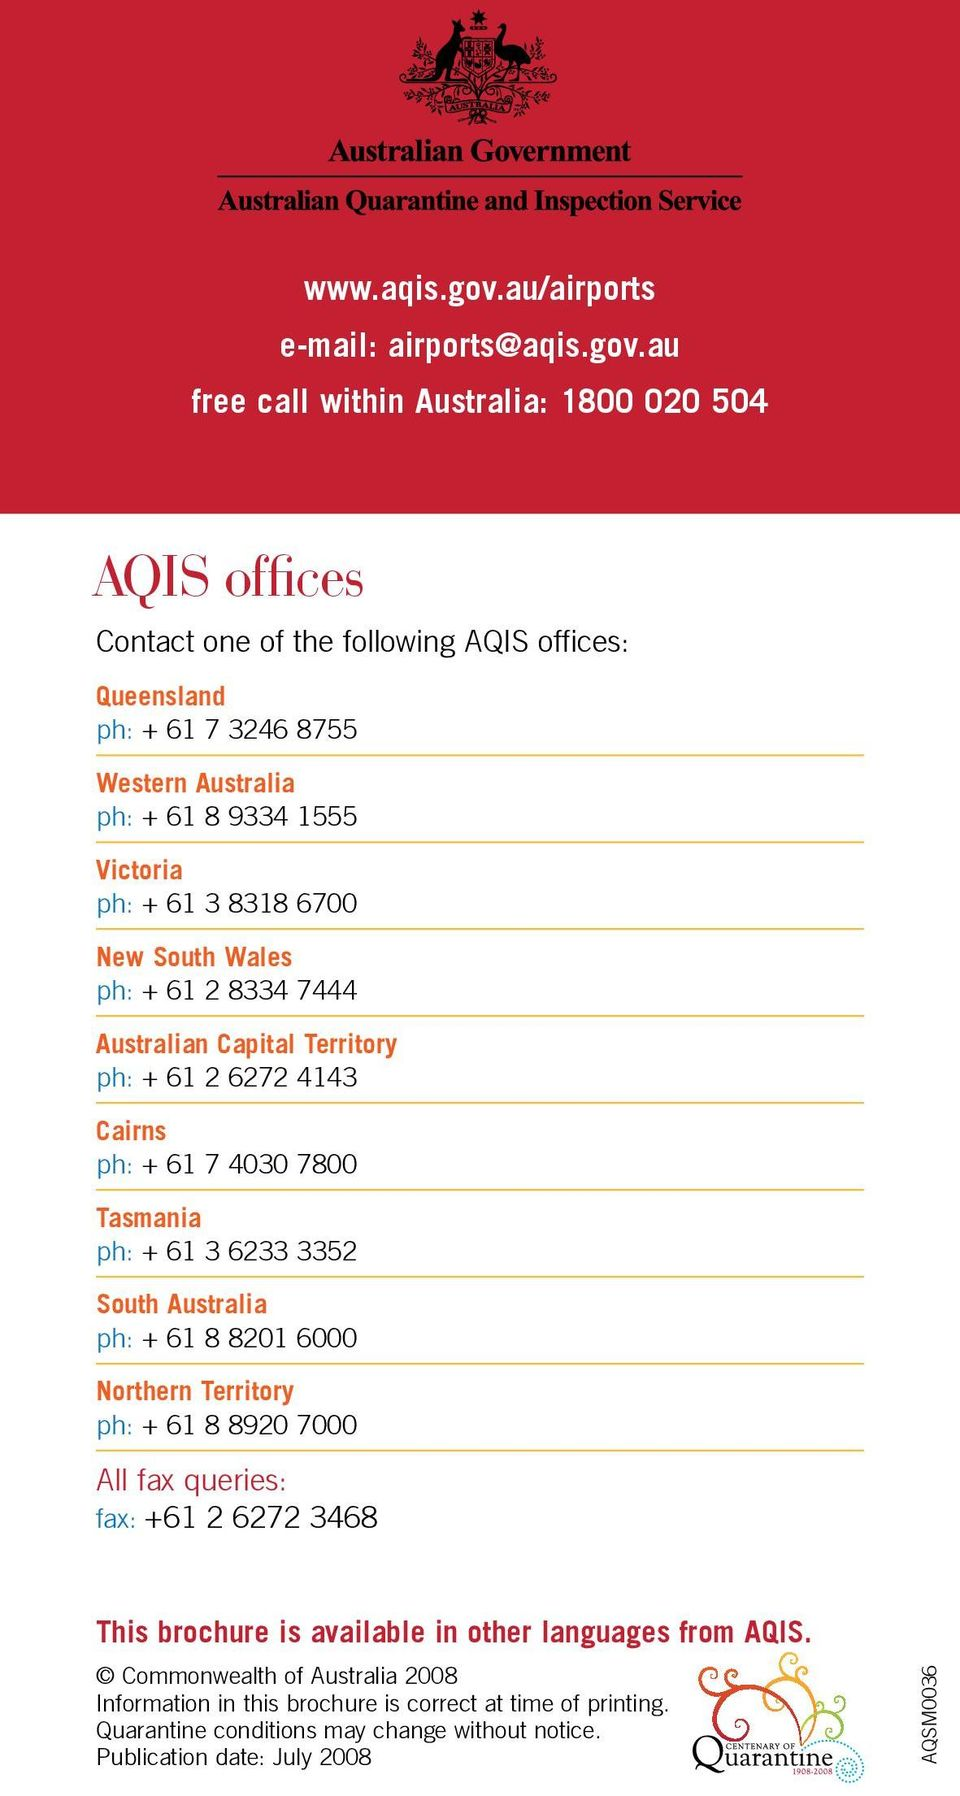 au free call within Australia: 1800 020 504 AQIS offices Contact one of the following AQIS offices: Queensland ph: + 61 7 3246 8755 Western Australia ph: + 61 8 9334 1555 Victoria ph: +